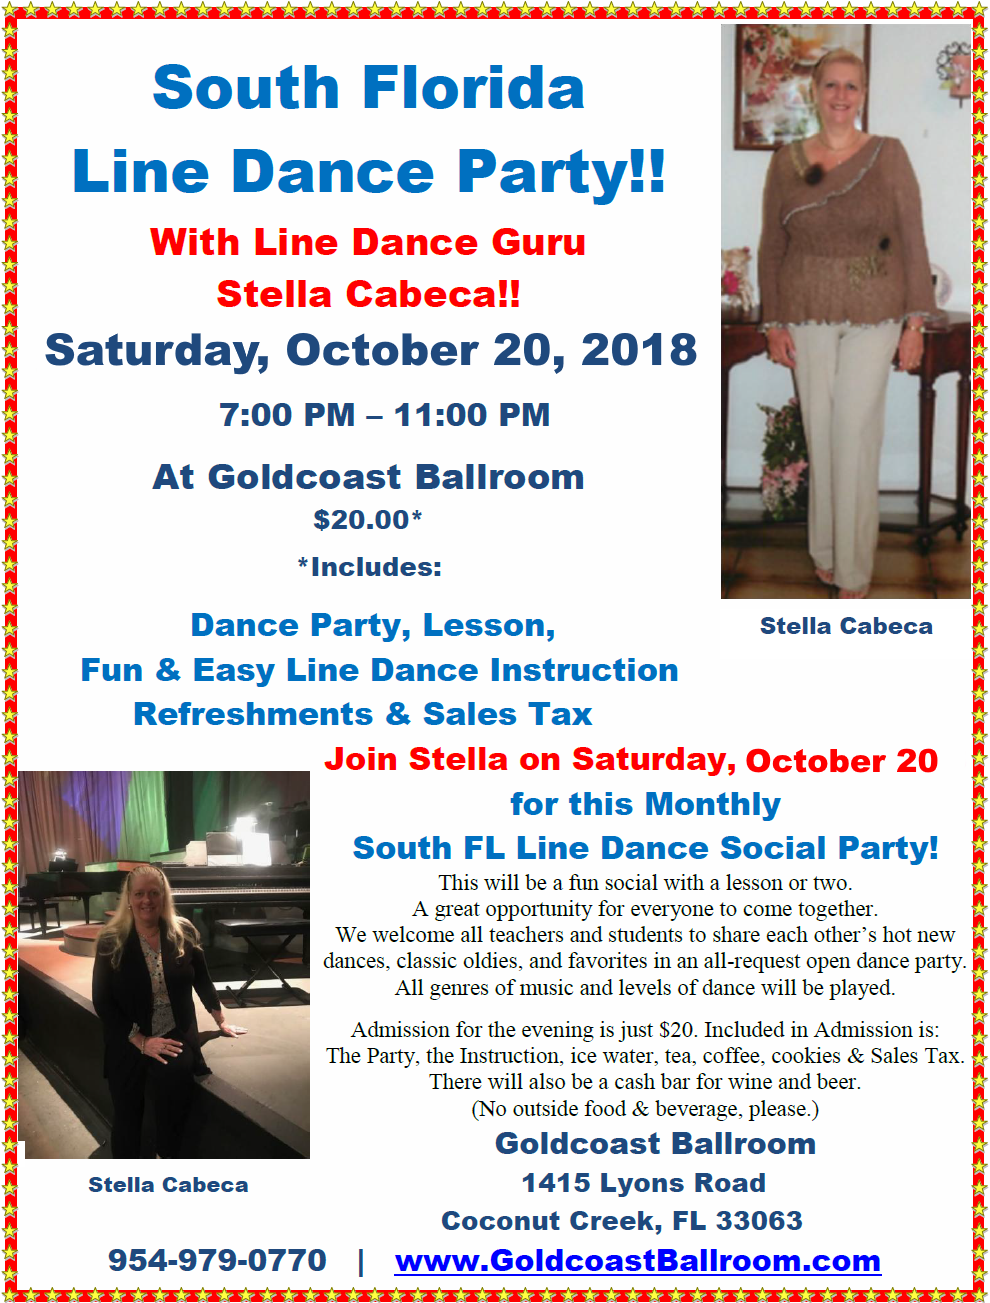 South Florida Line Dance Party - Saturday, October 20, 2018 at Goldcoast Ballroom